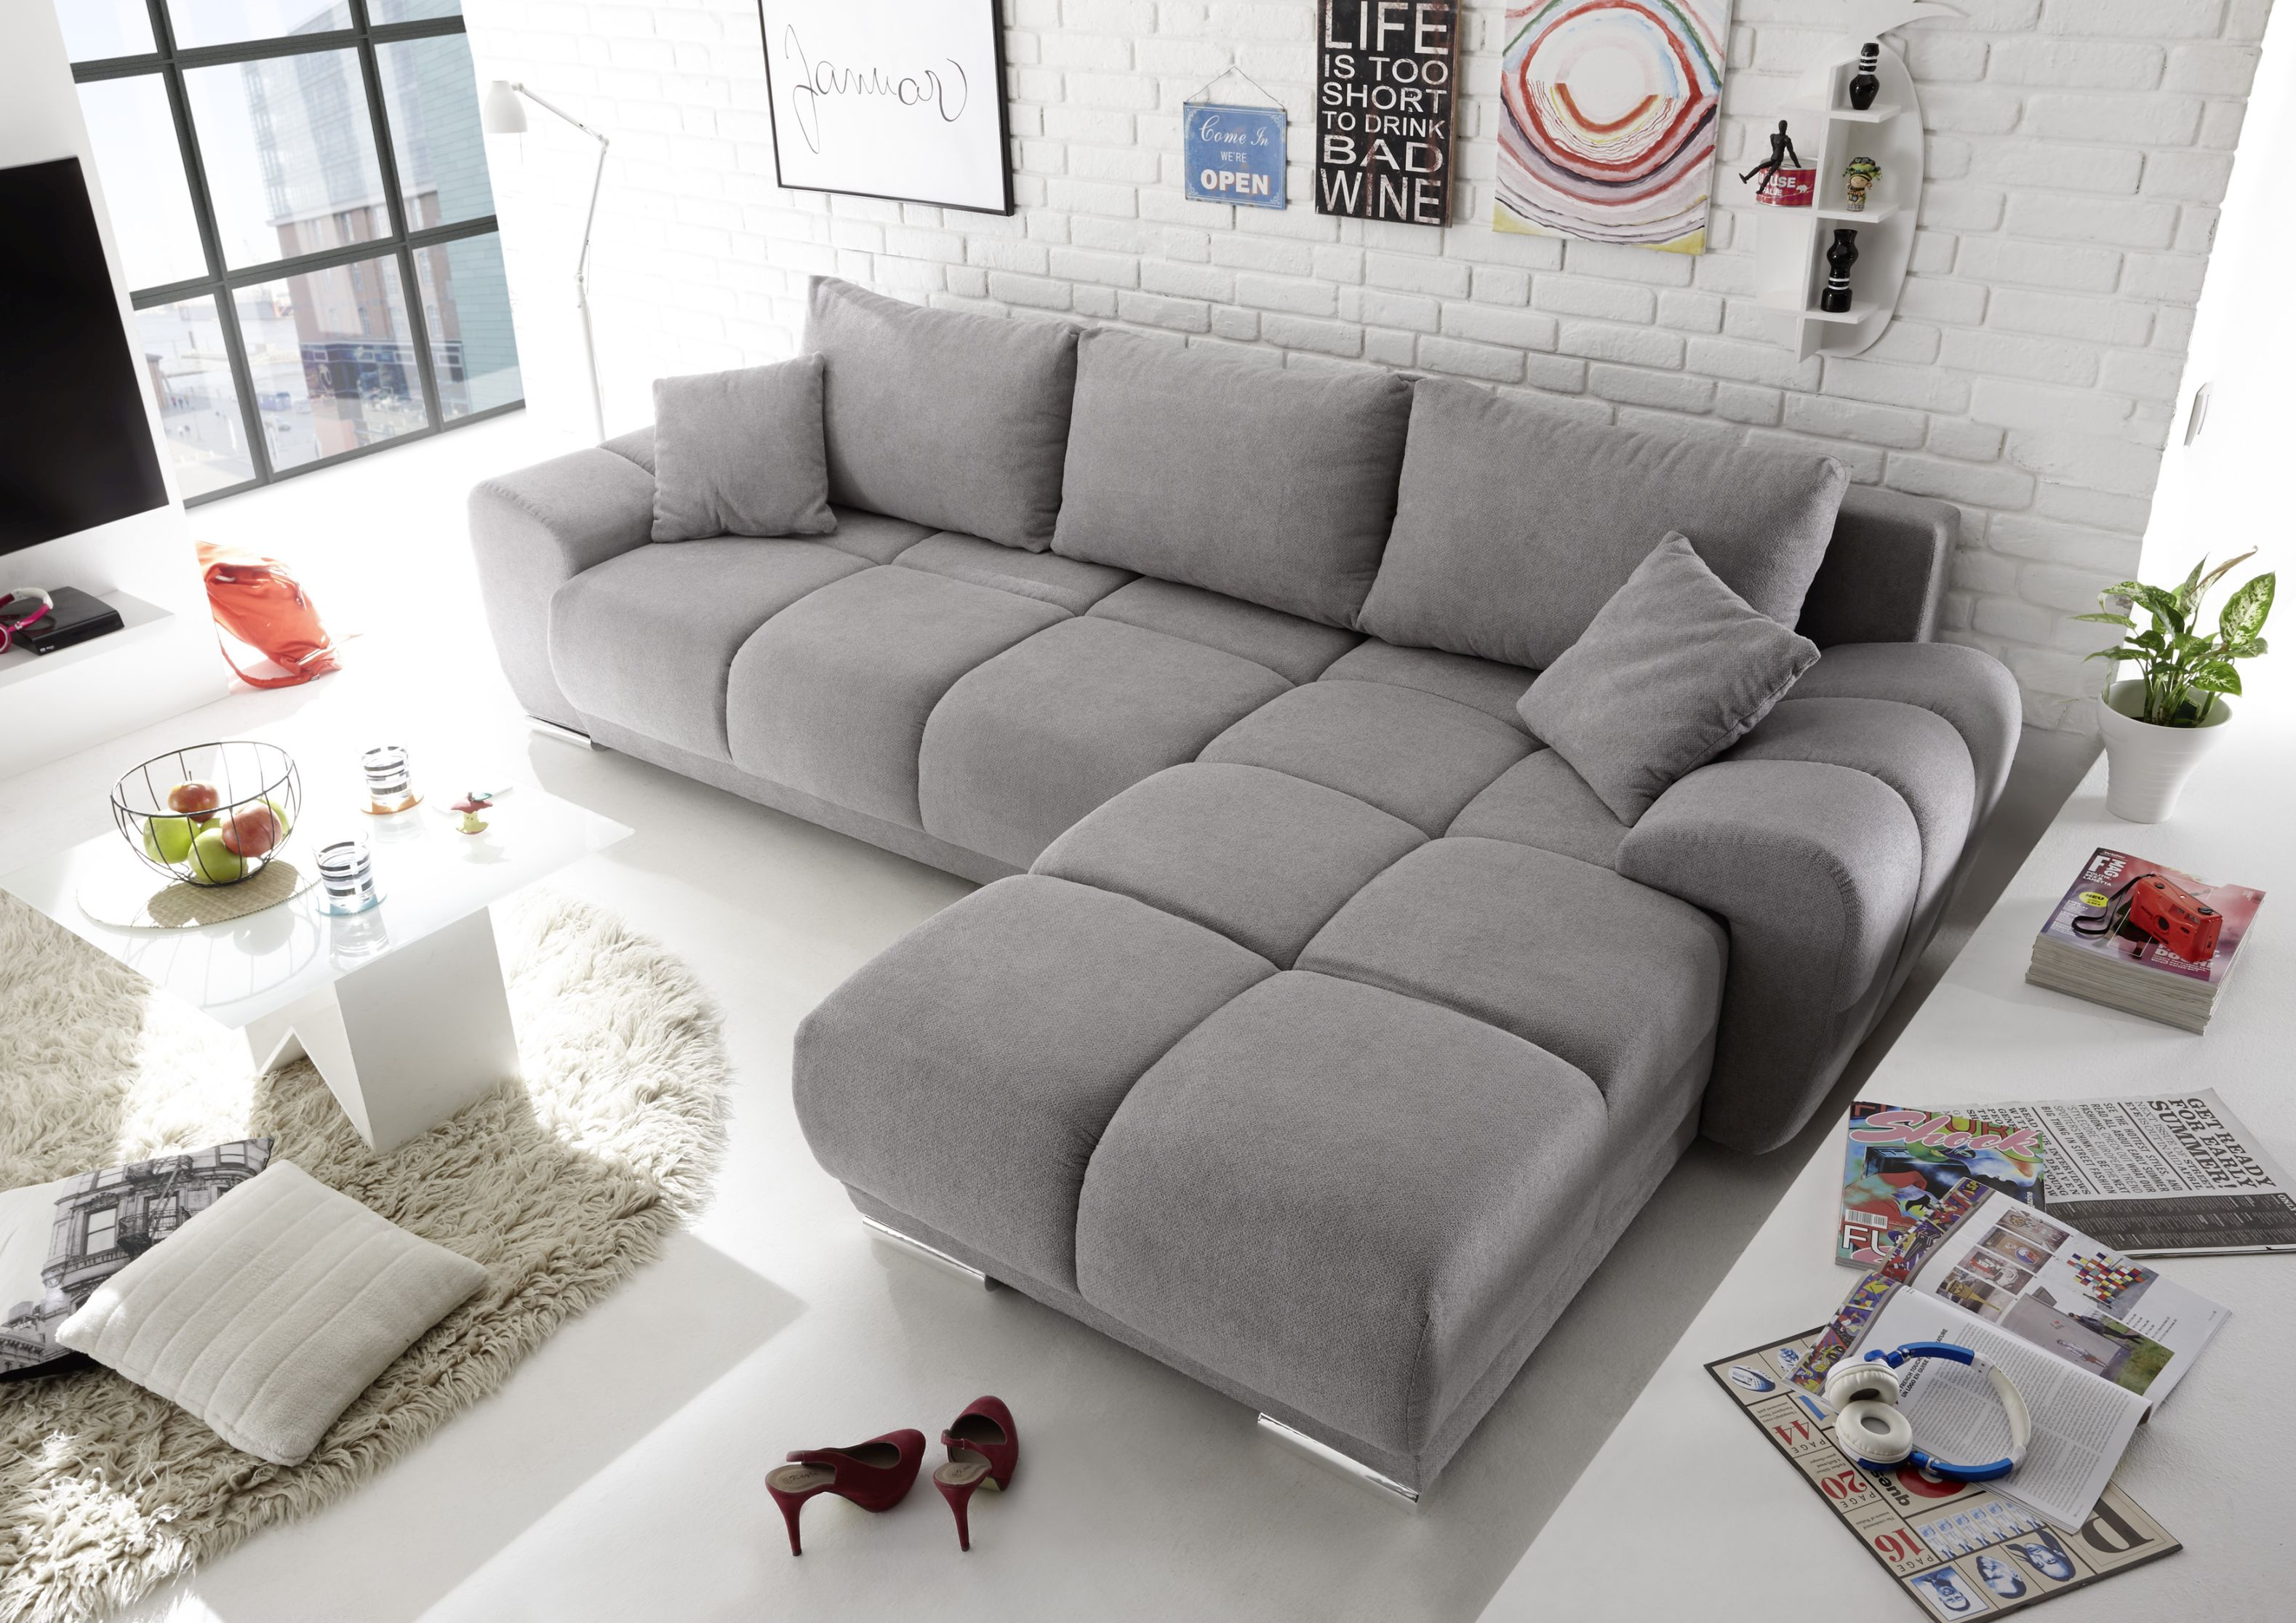 Ecksofa couch schlafcouch schlafsofa funktionssofa for Schlafcouch